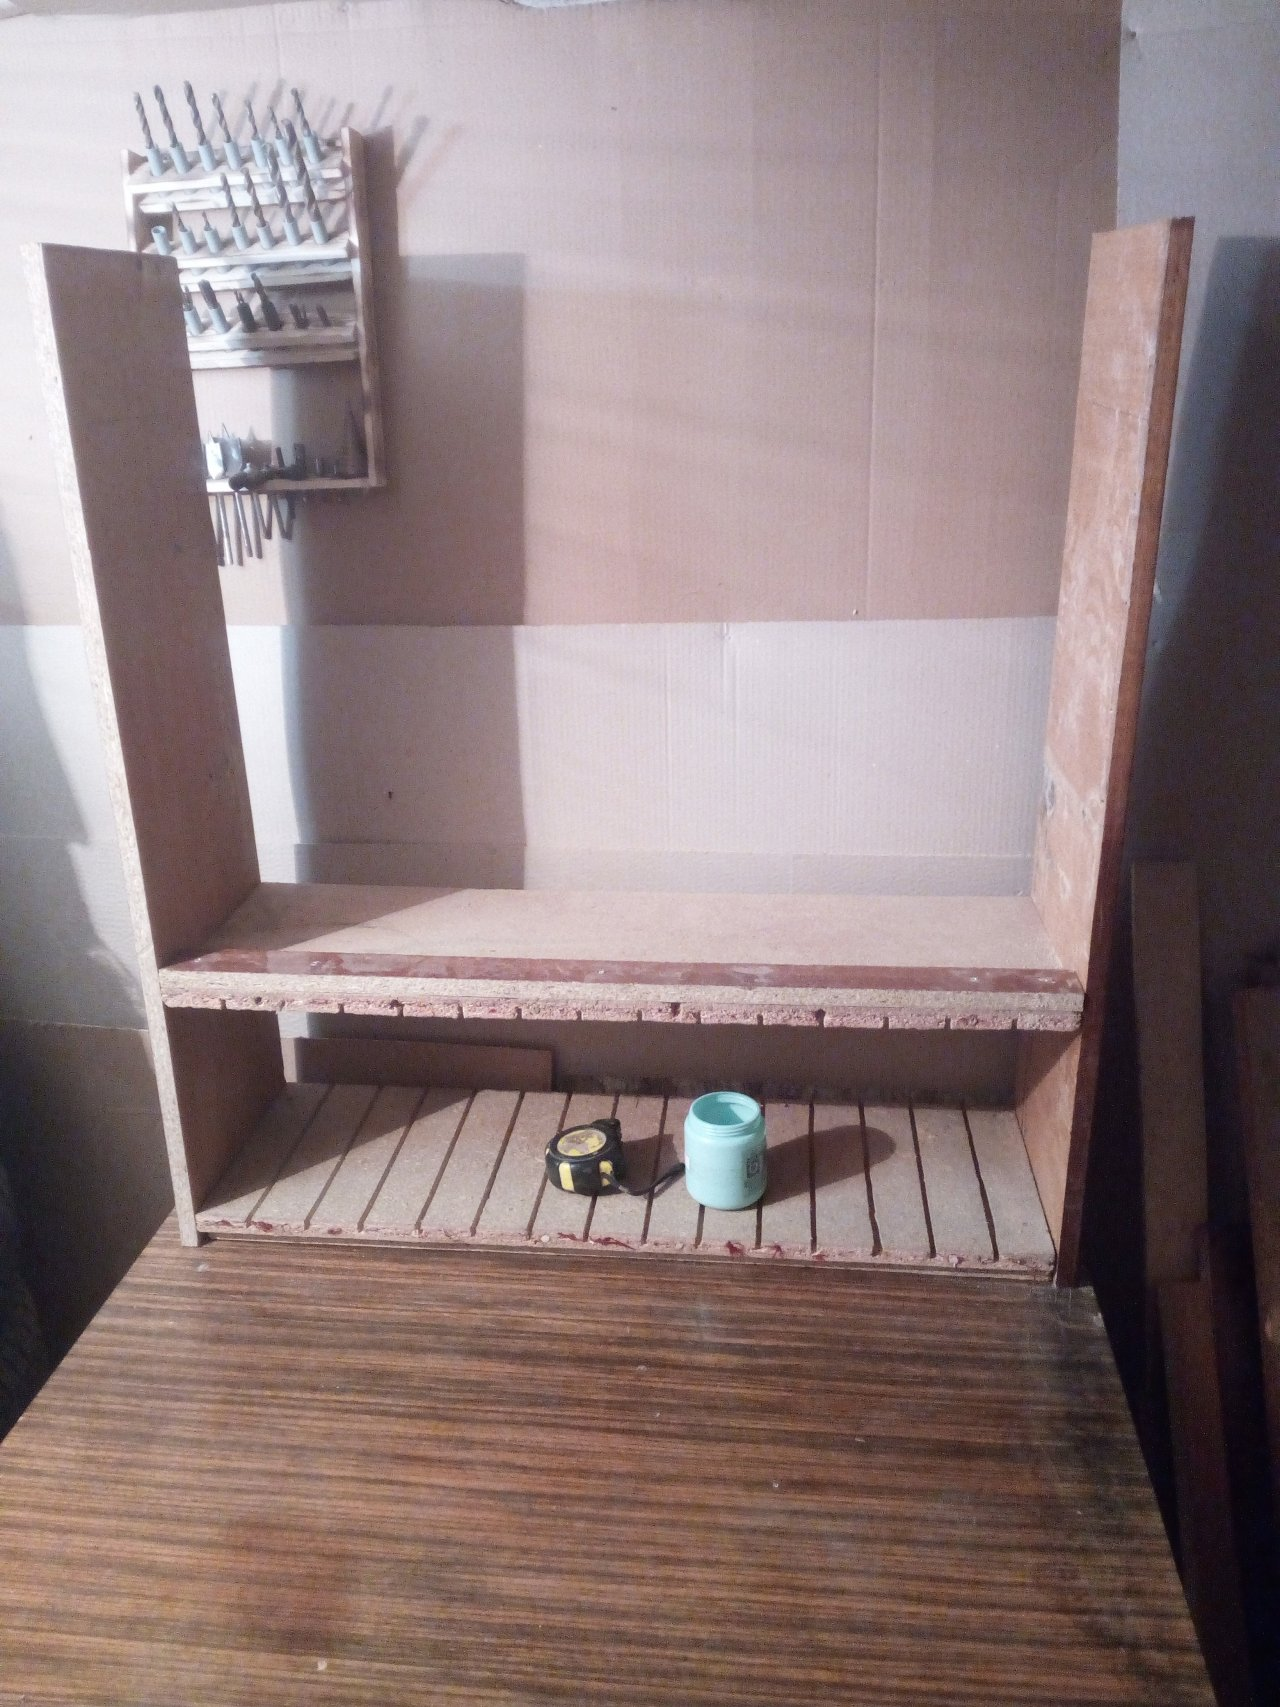 Hinged shelf-cabinet for storing power tools with boxes for hardware from canisters